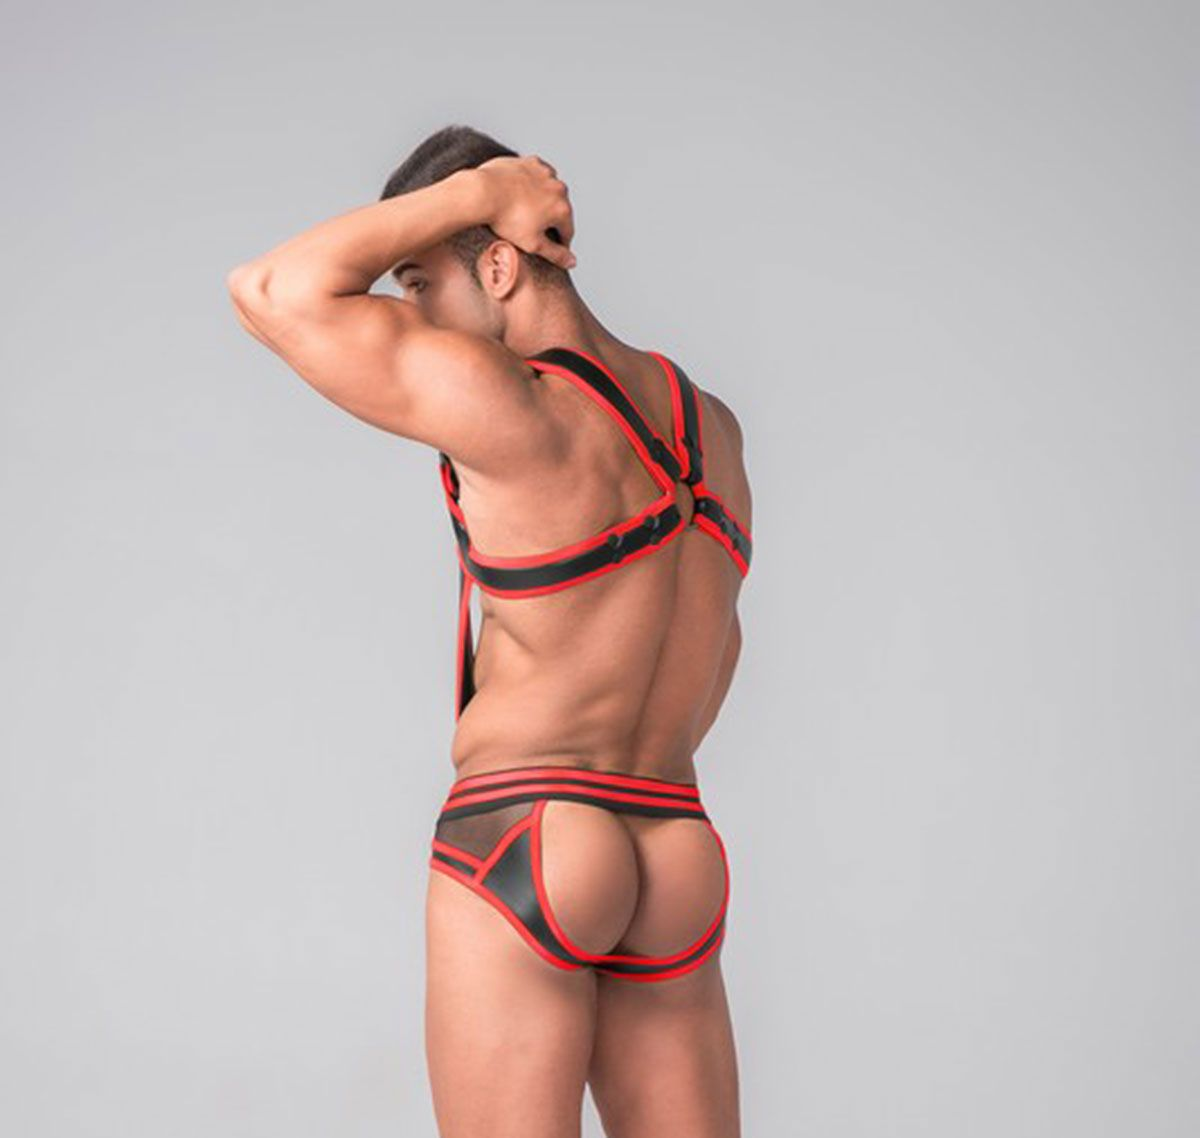 MASKULO Harness YOUNGERO GENERATION Y. Men's Fetish Bulldog Harness with Cockring HR111-10, red